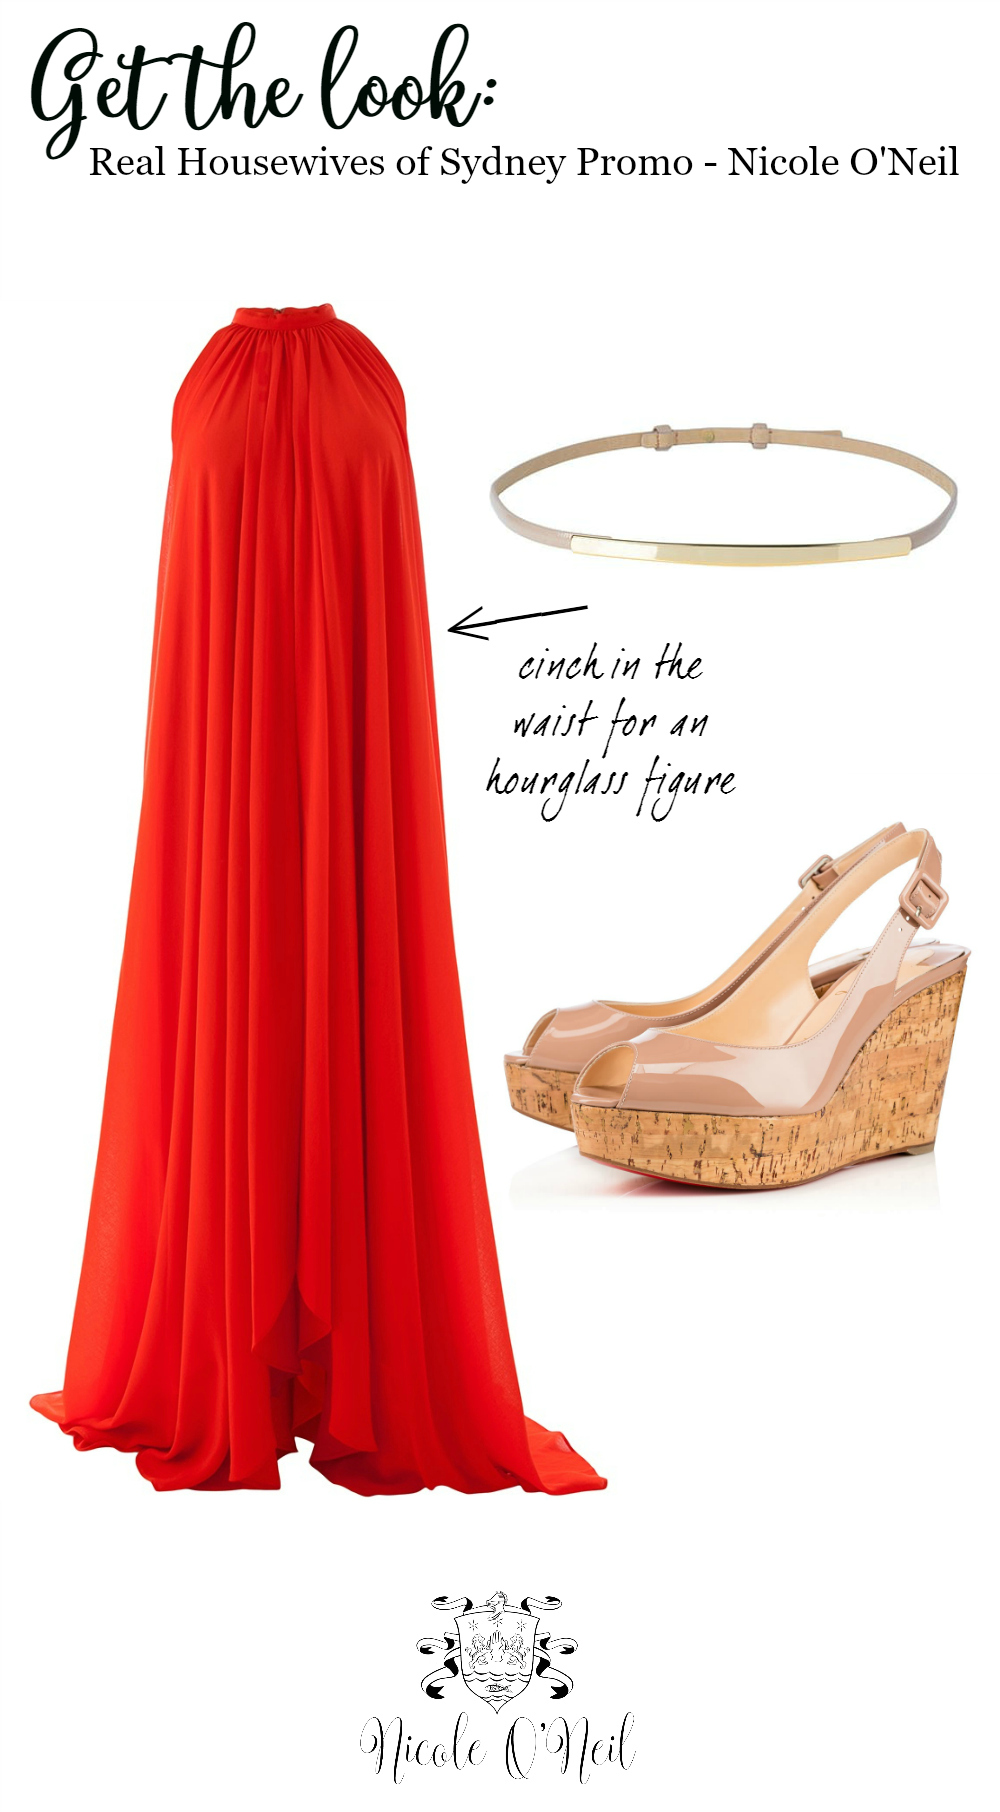 Red Dress Outfit Inspiration - Nicole O'Neil Real Housewives of Sydney Promo Ad - Shop the Look